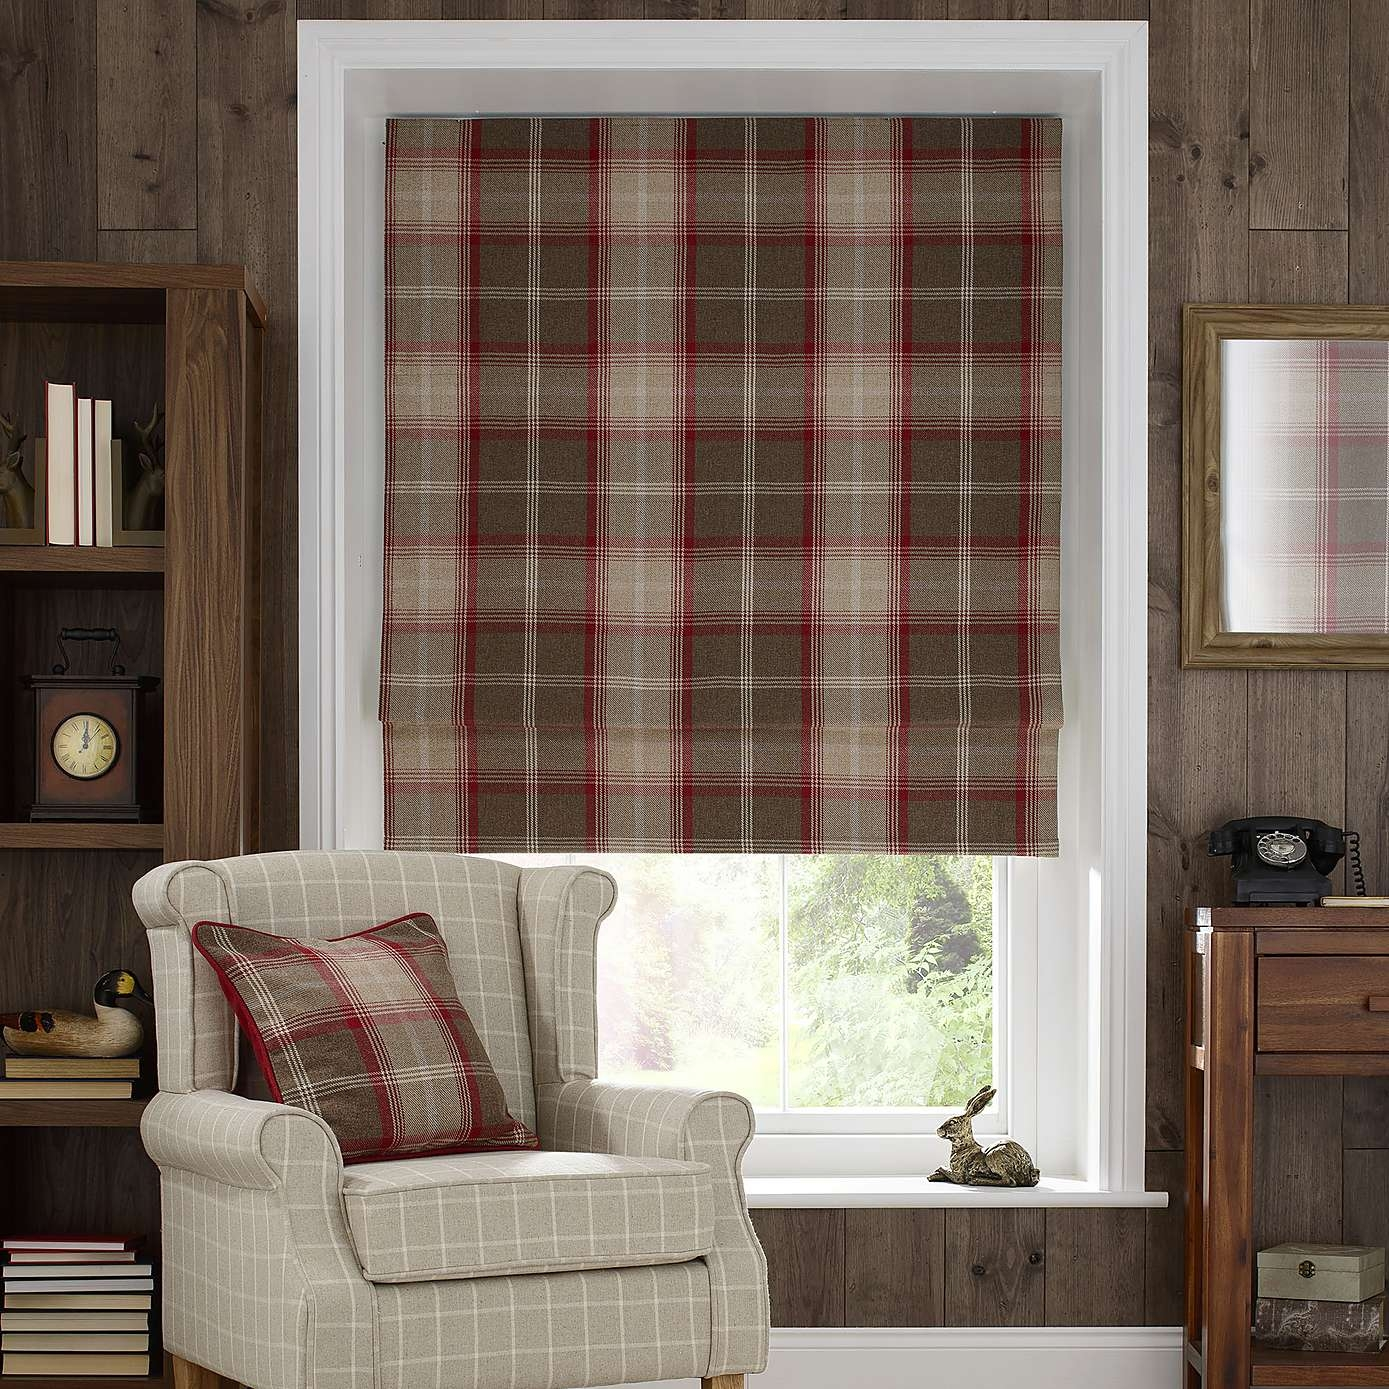 Red Highland Check Blackout Roman Blind Dunelm Living Room Within Plaid Roman Blinds (Image 6 of 15)